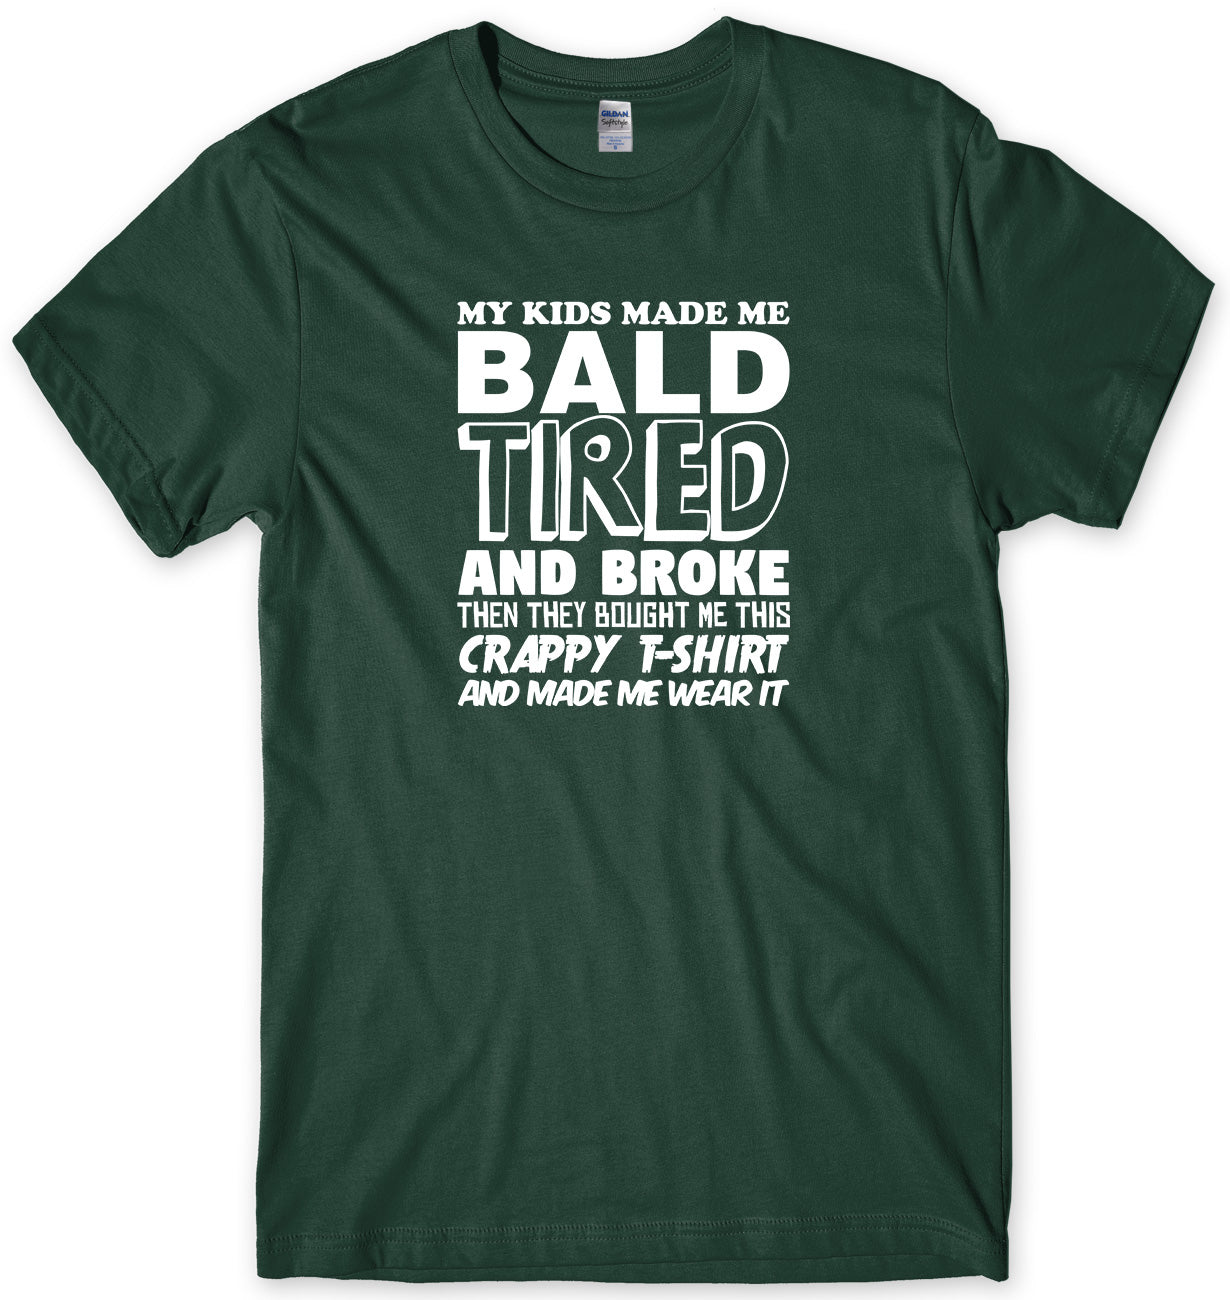 MY KIDS MADE ME BALD TIRED AND BROKE MENS FUNNY UNISEX T-SHIRT